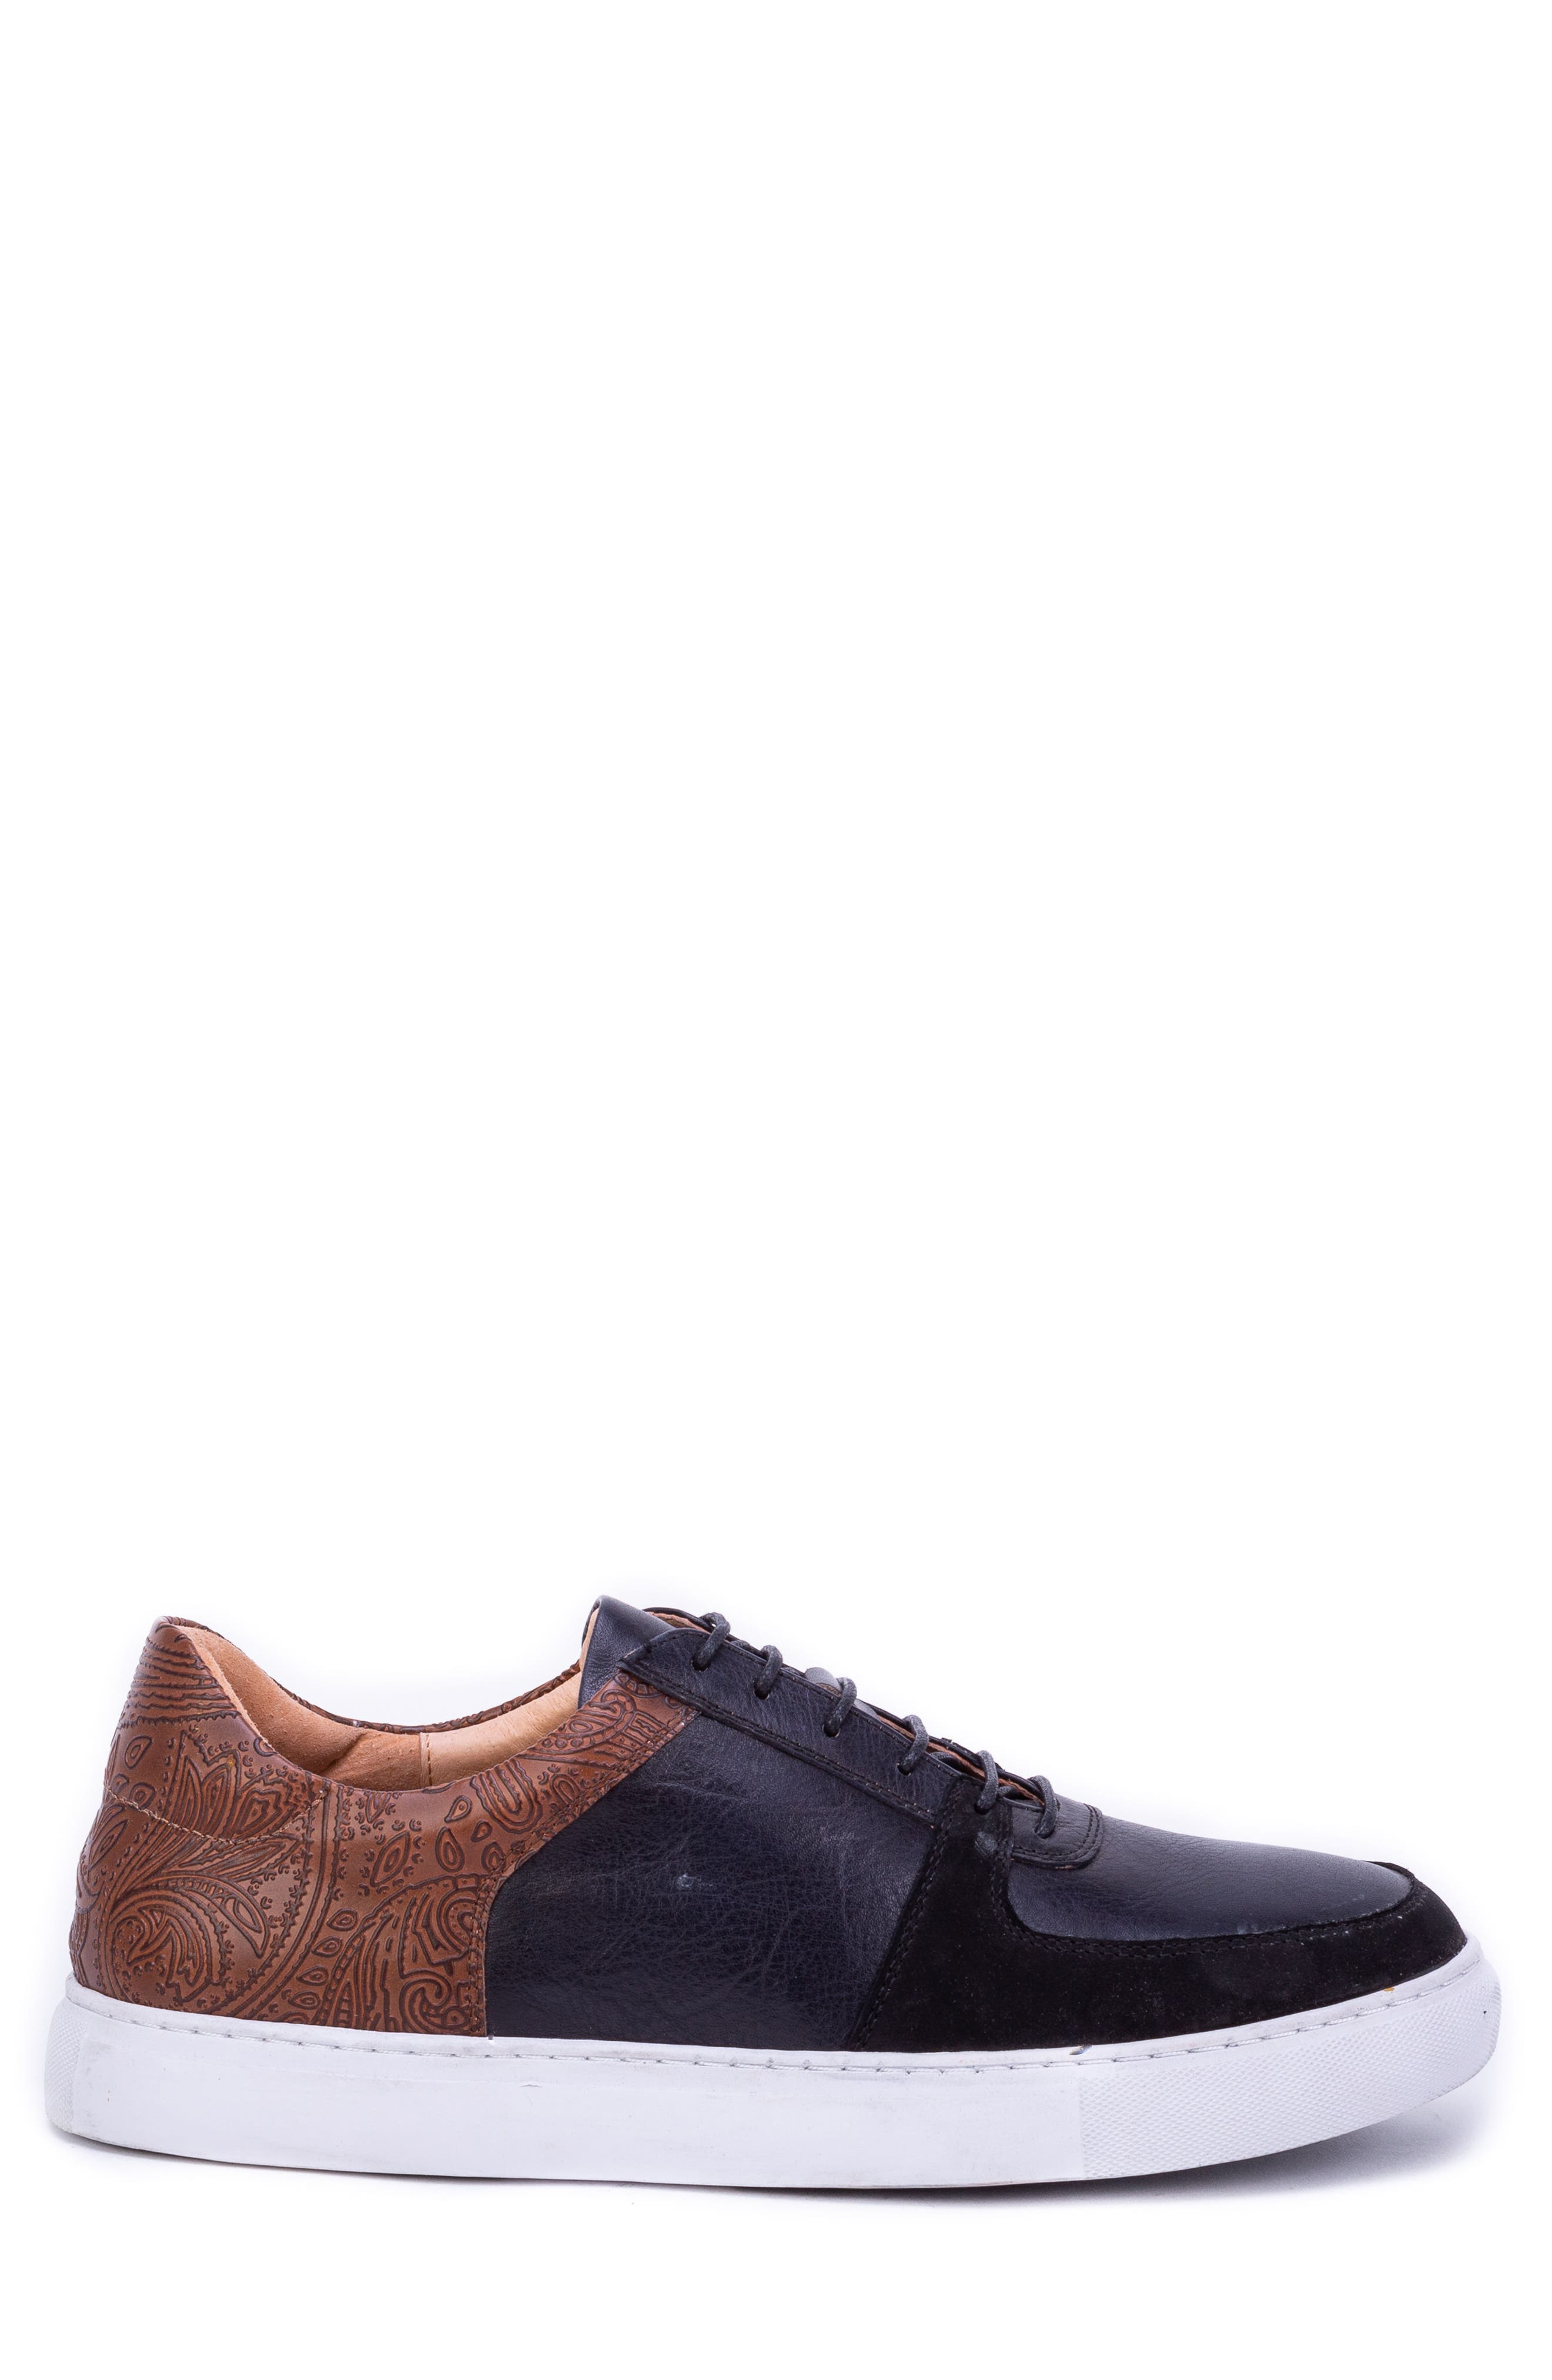 Chadwick Paisley Tooled Sneaker,                             Alternate thumbnail 3, color,                             BLACK LEATHER/ SUEDE